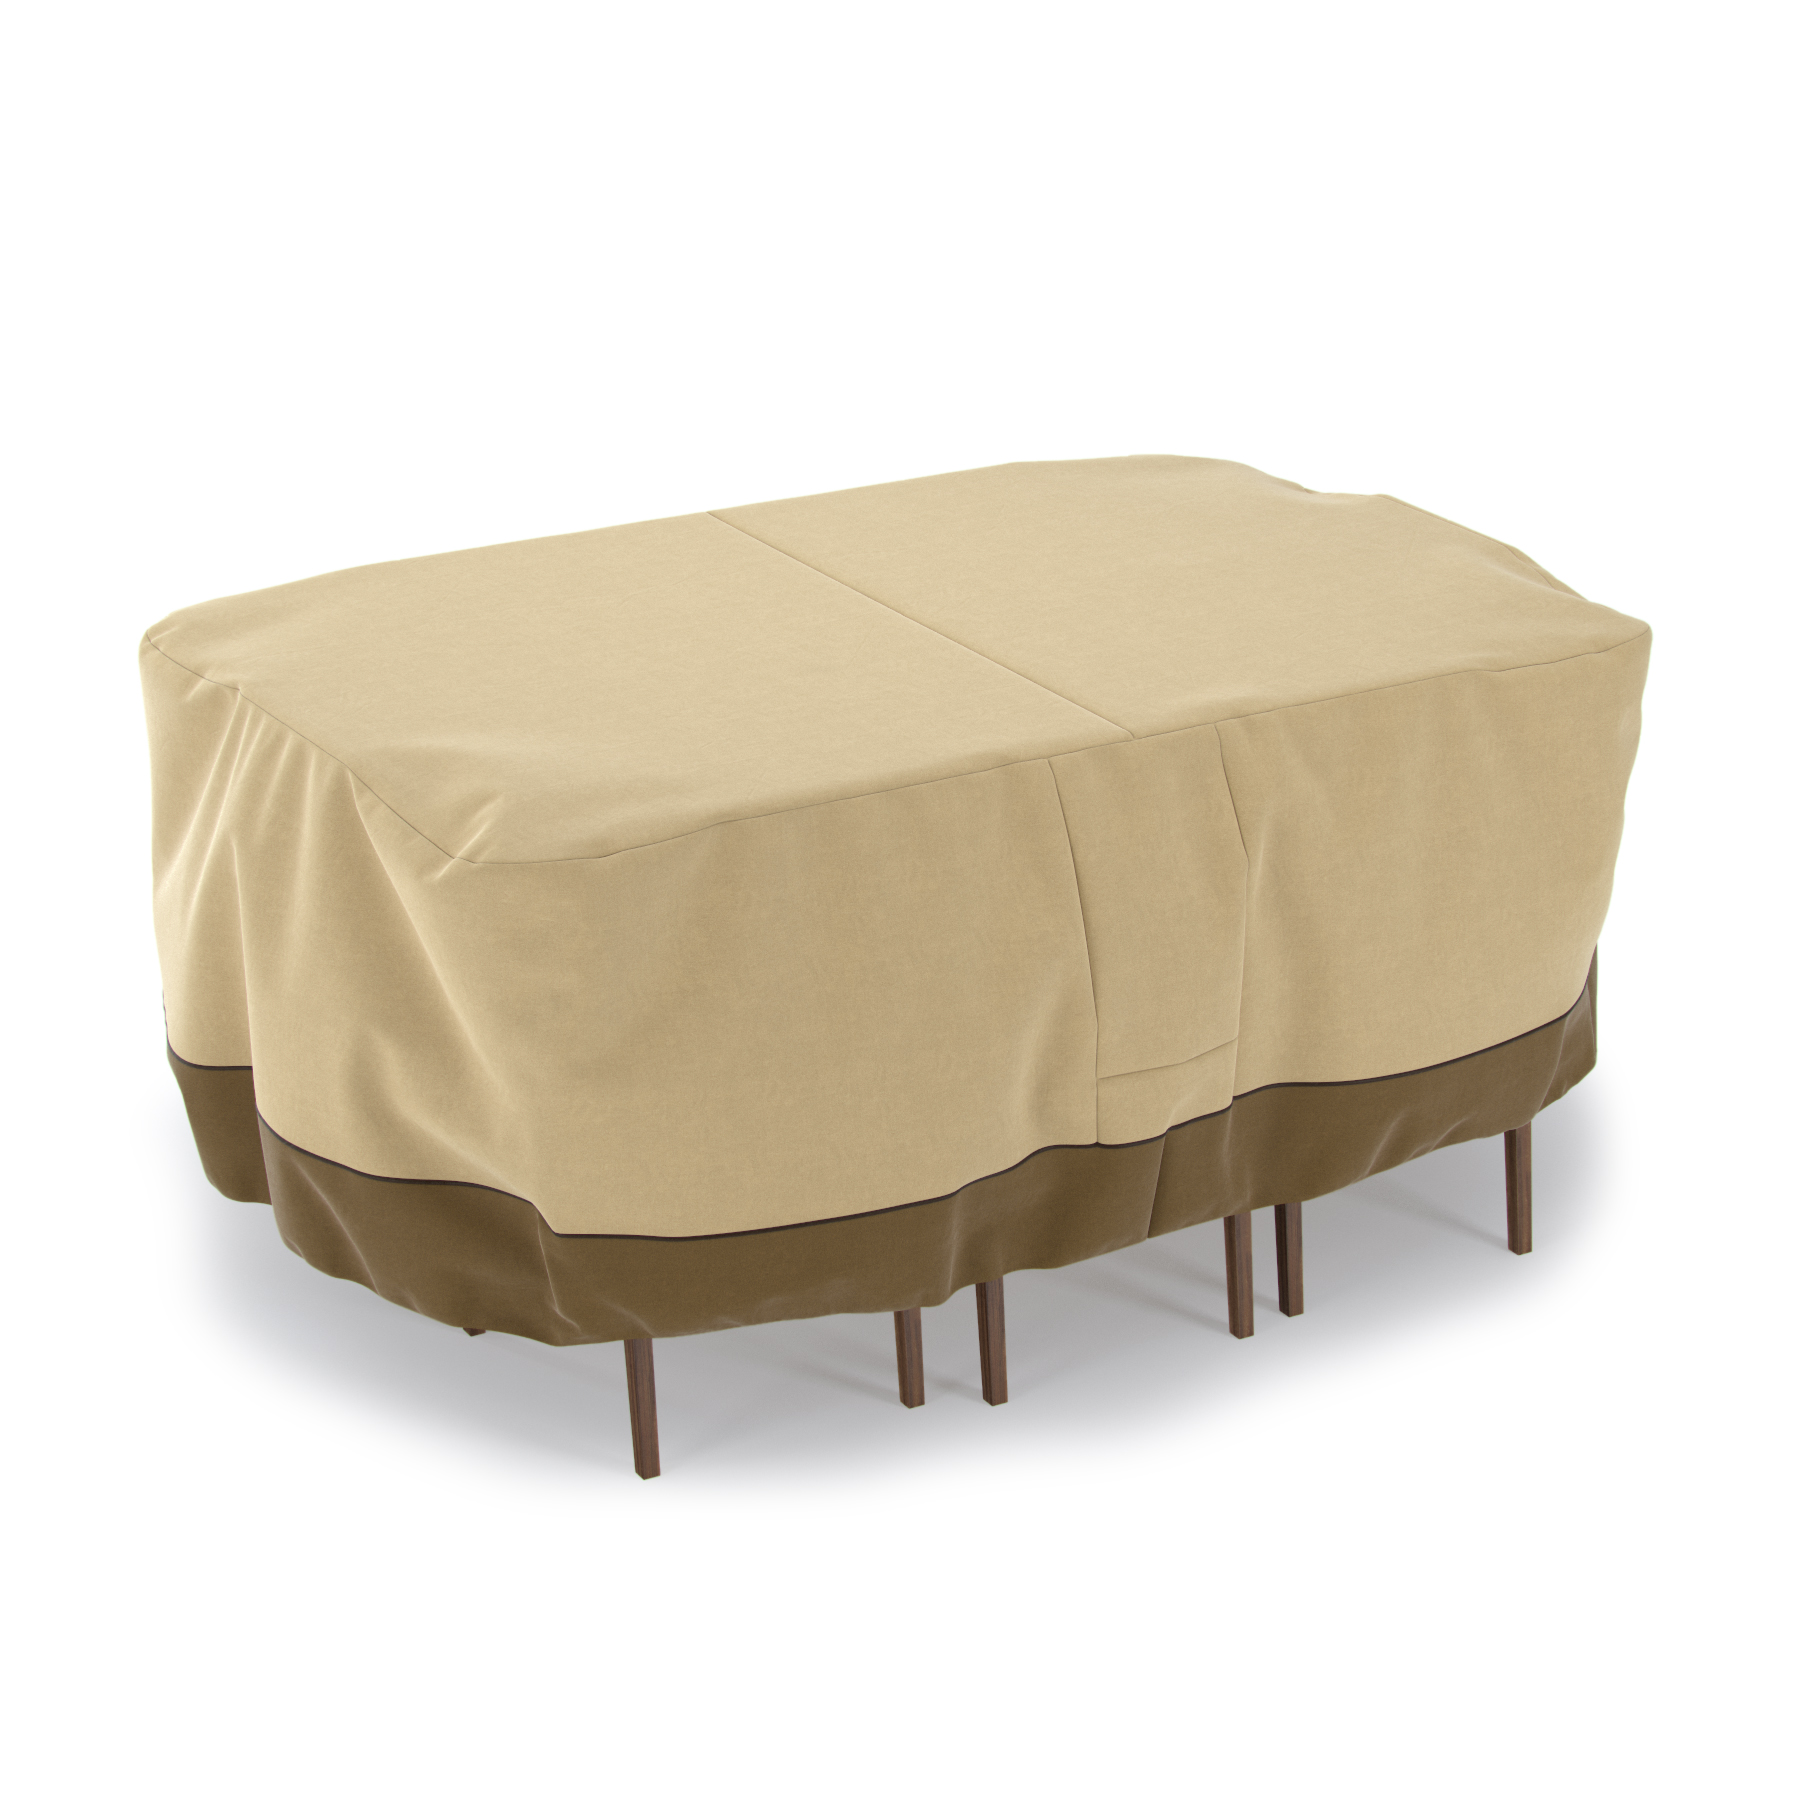 Heavy duty patio furniture covers montlake fadesafe for Uv patio furniture covers